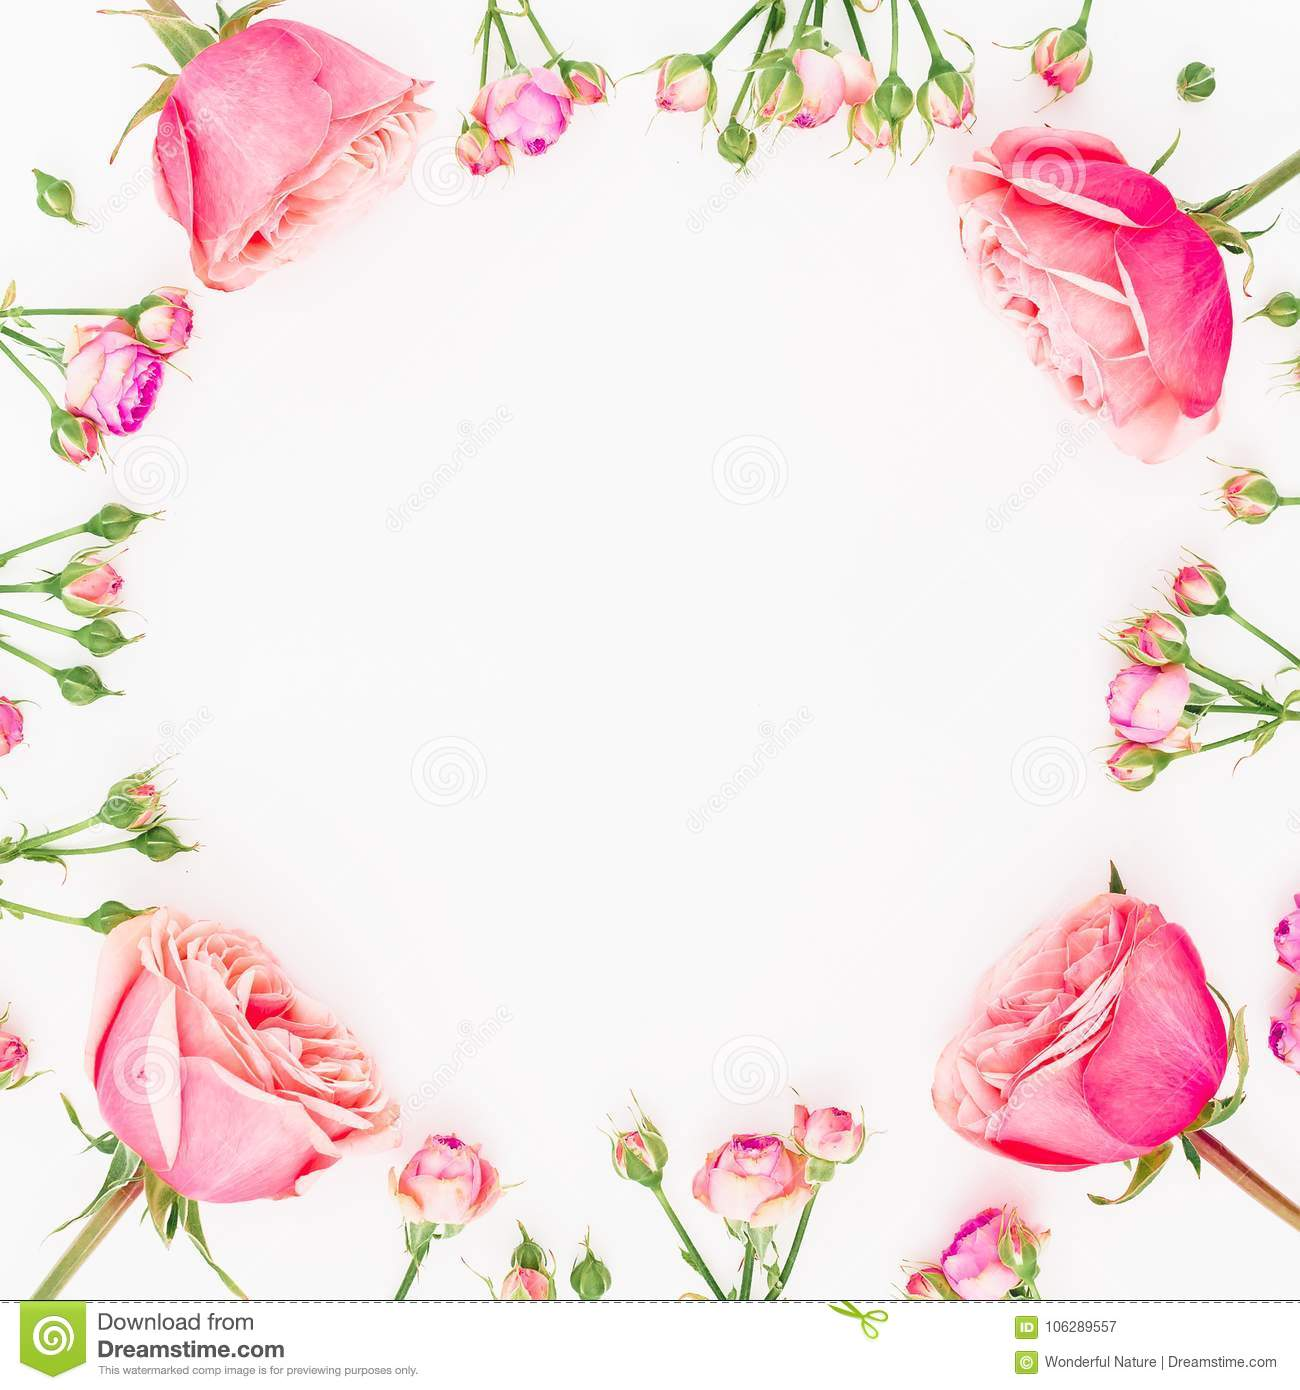 Floral round frame made of pink roses isolated on white background. Flat lay, top view. Valentines day background.